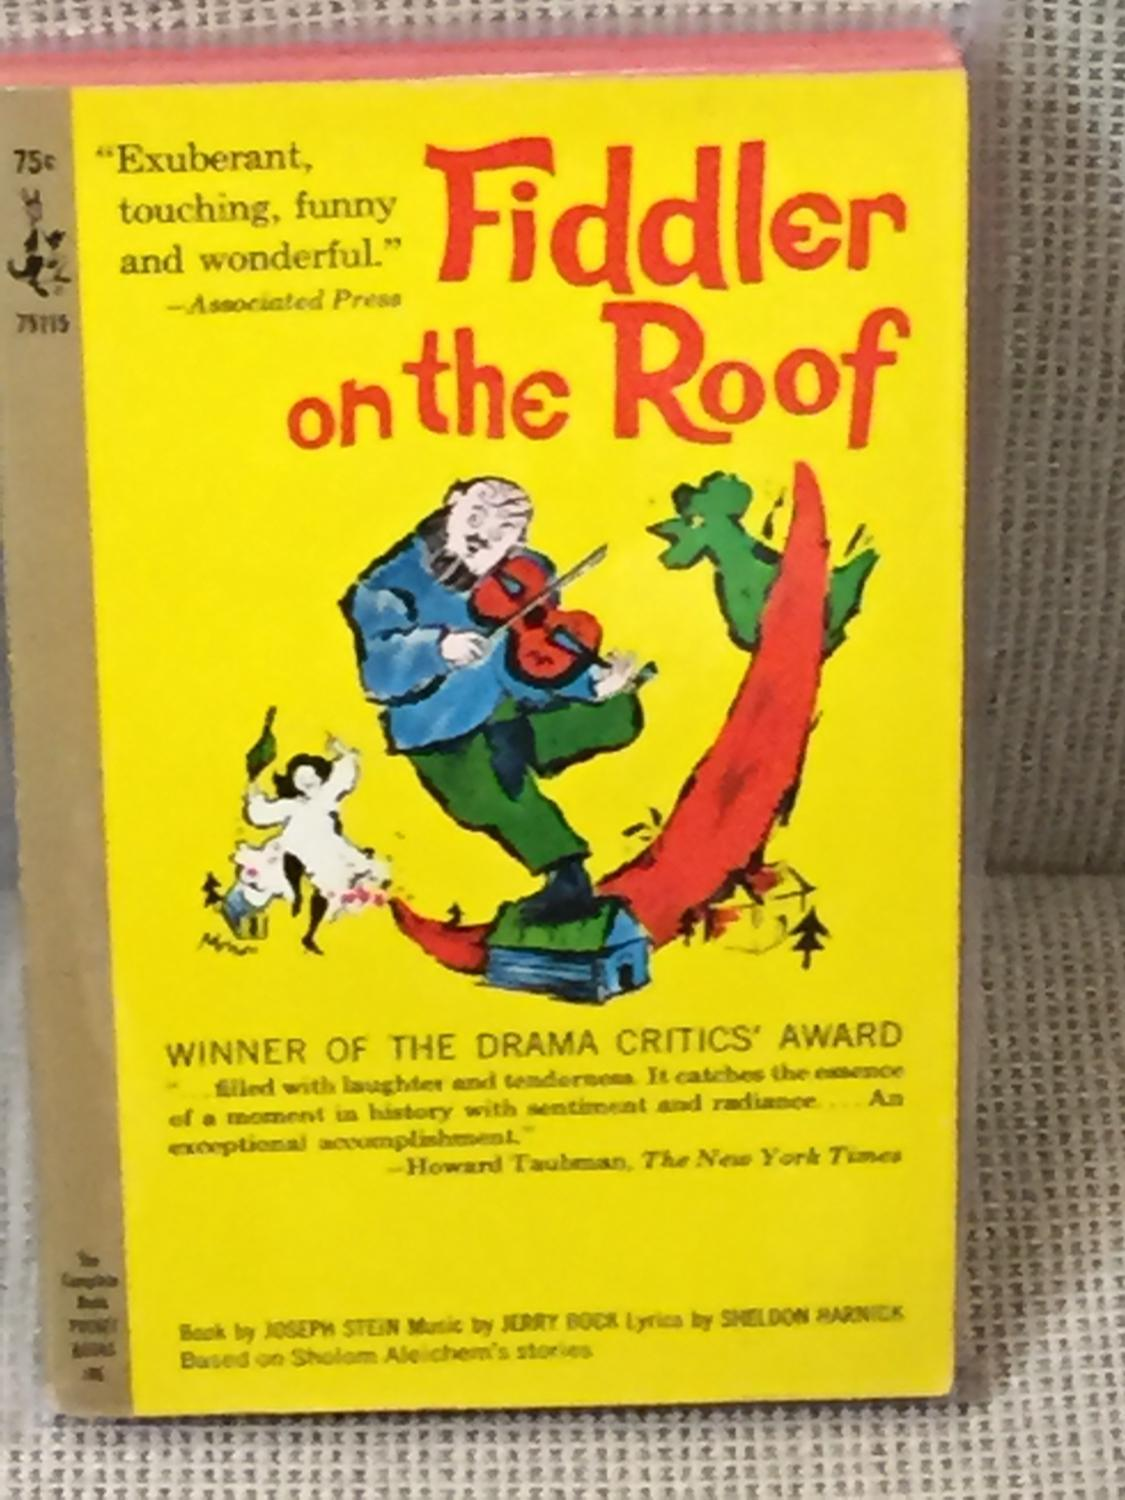 an analysis of fiddler on the roof by joseph stein Fiddler on the roof overview bring a fresh and authentic vision to this beloved theatrical masterpiece from tony winner joseph stein and pulitzer prize winners.